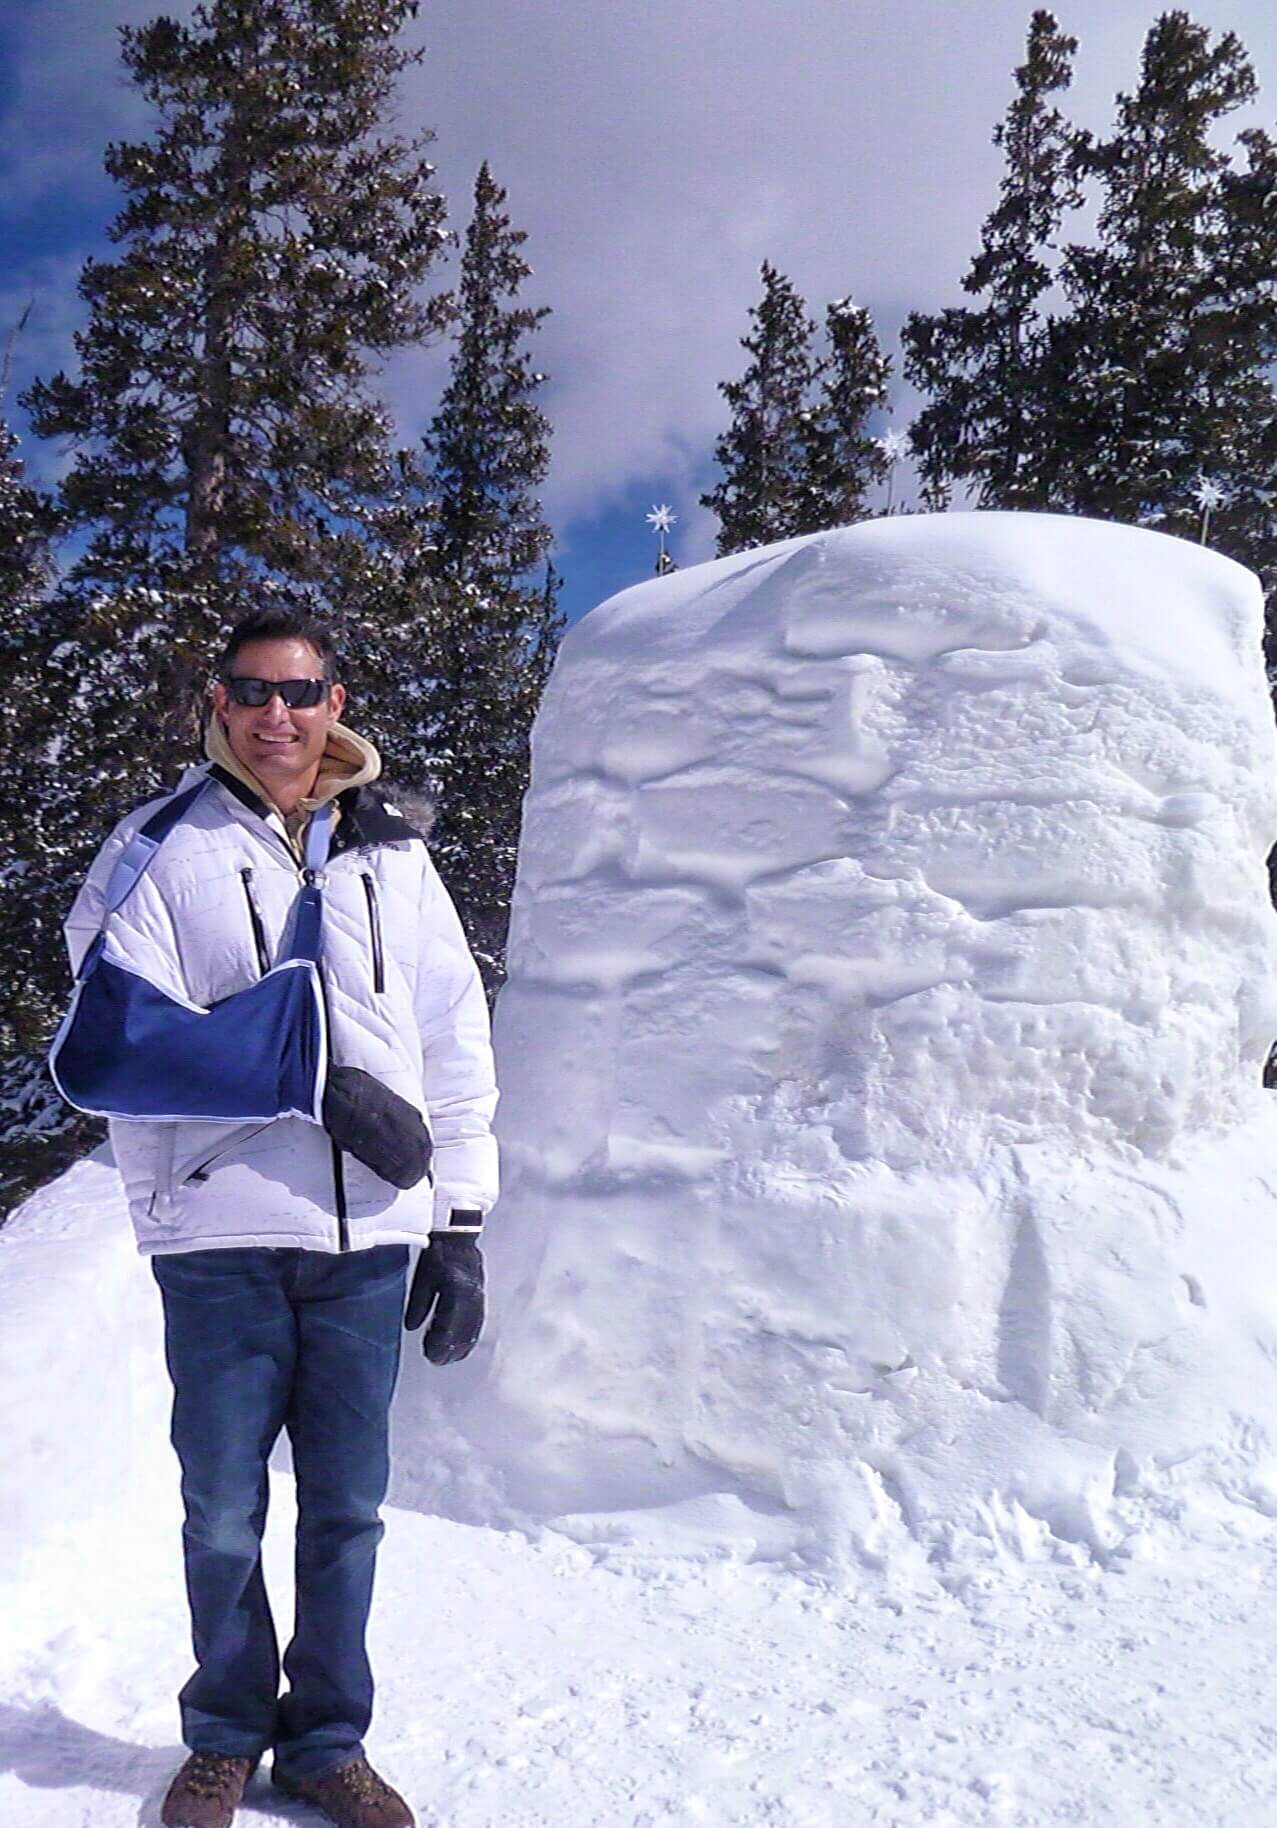 mick in front of snow sculpture keystone